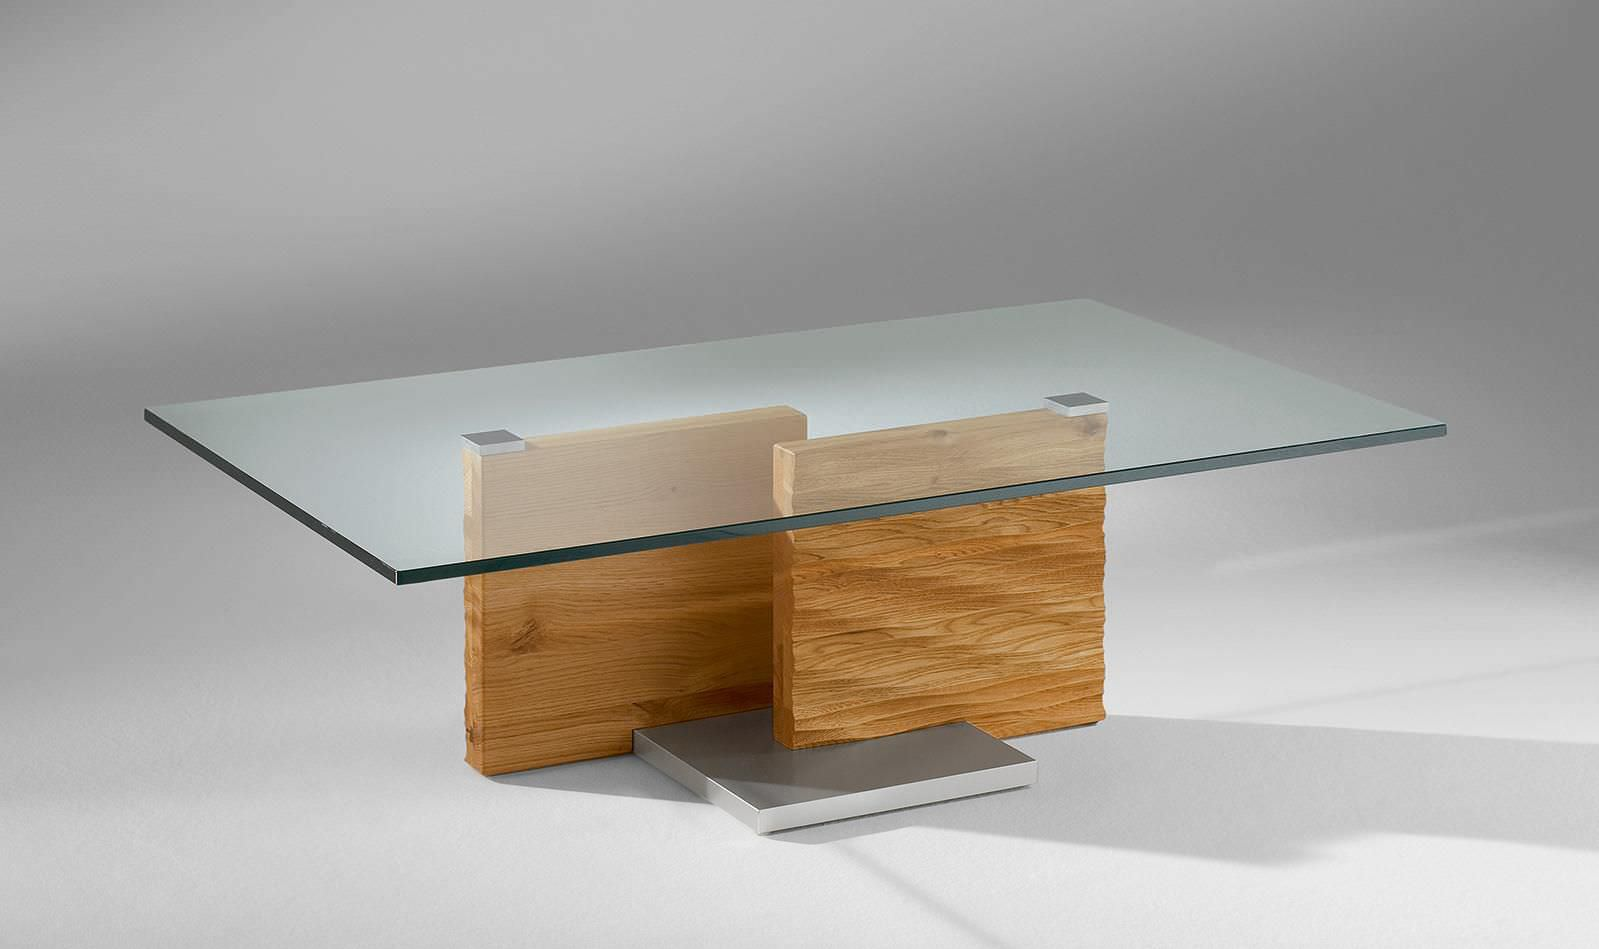 Table Basse Bois Verre Design Table De Salon Contemporaine En Verre Table Basse Ronde Bois Metal